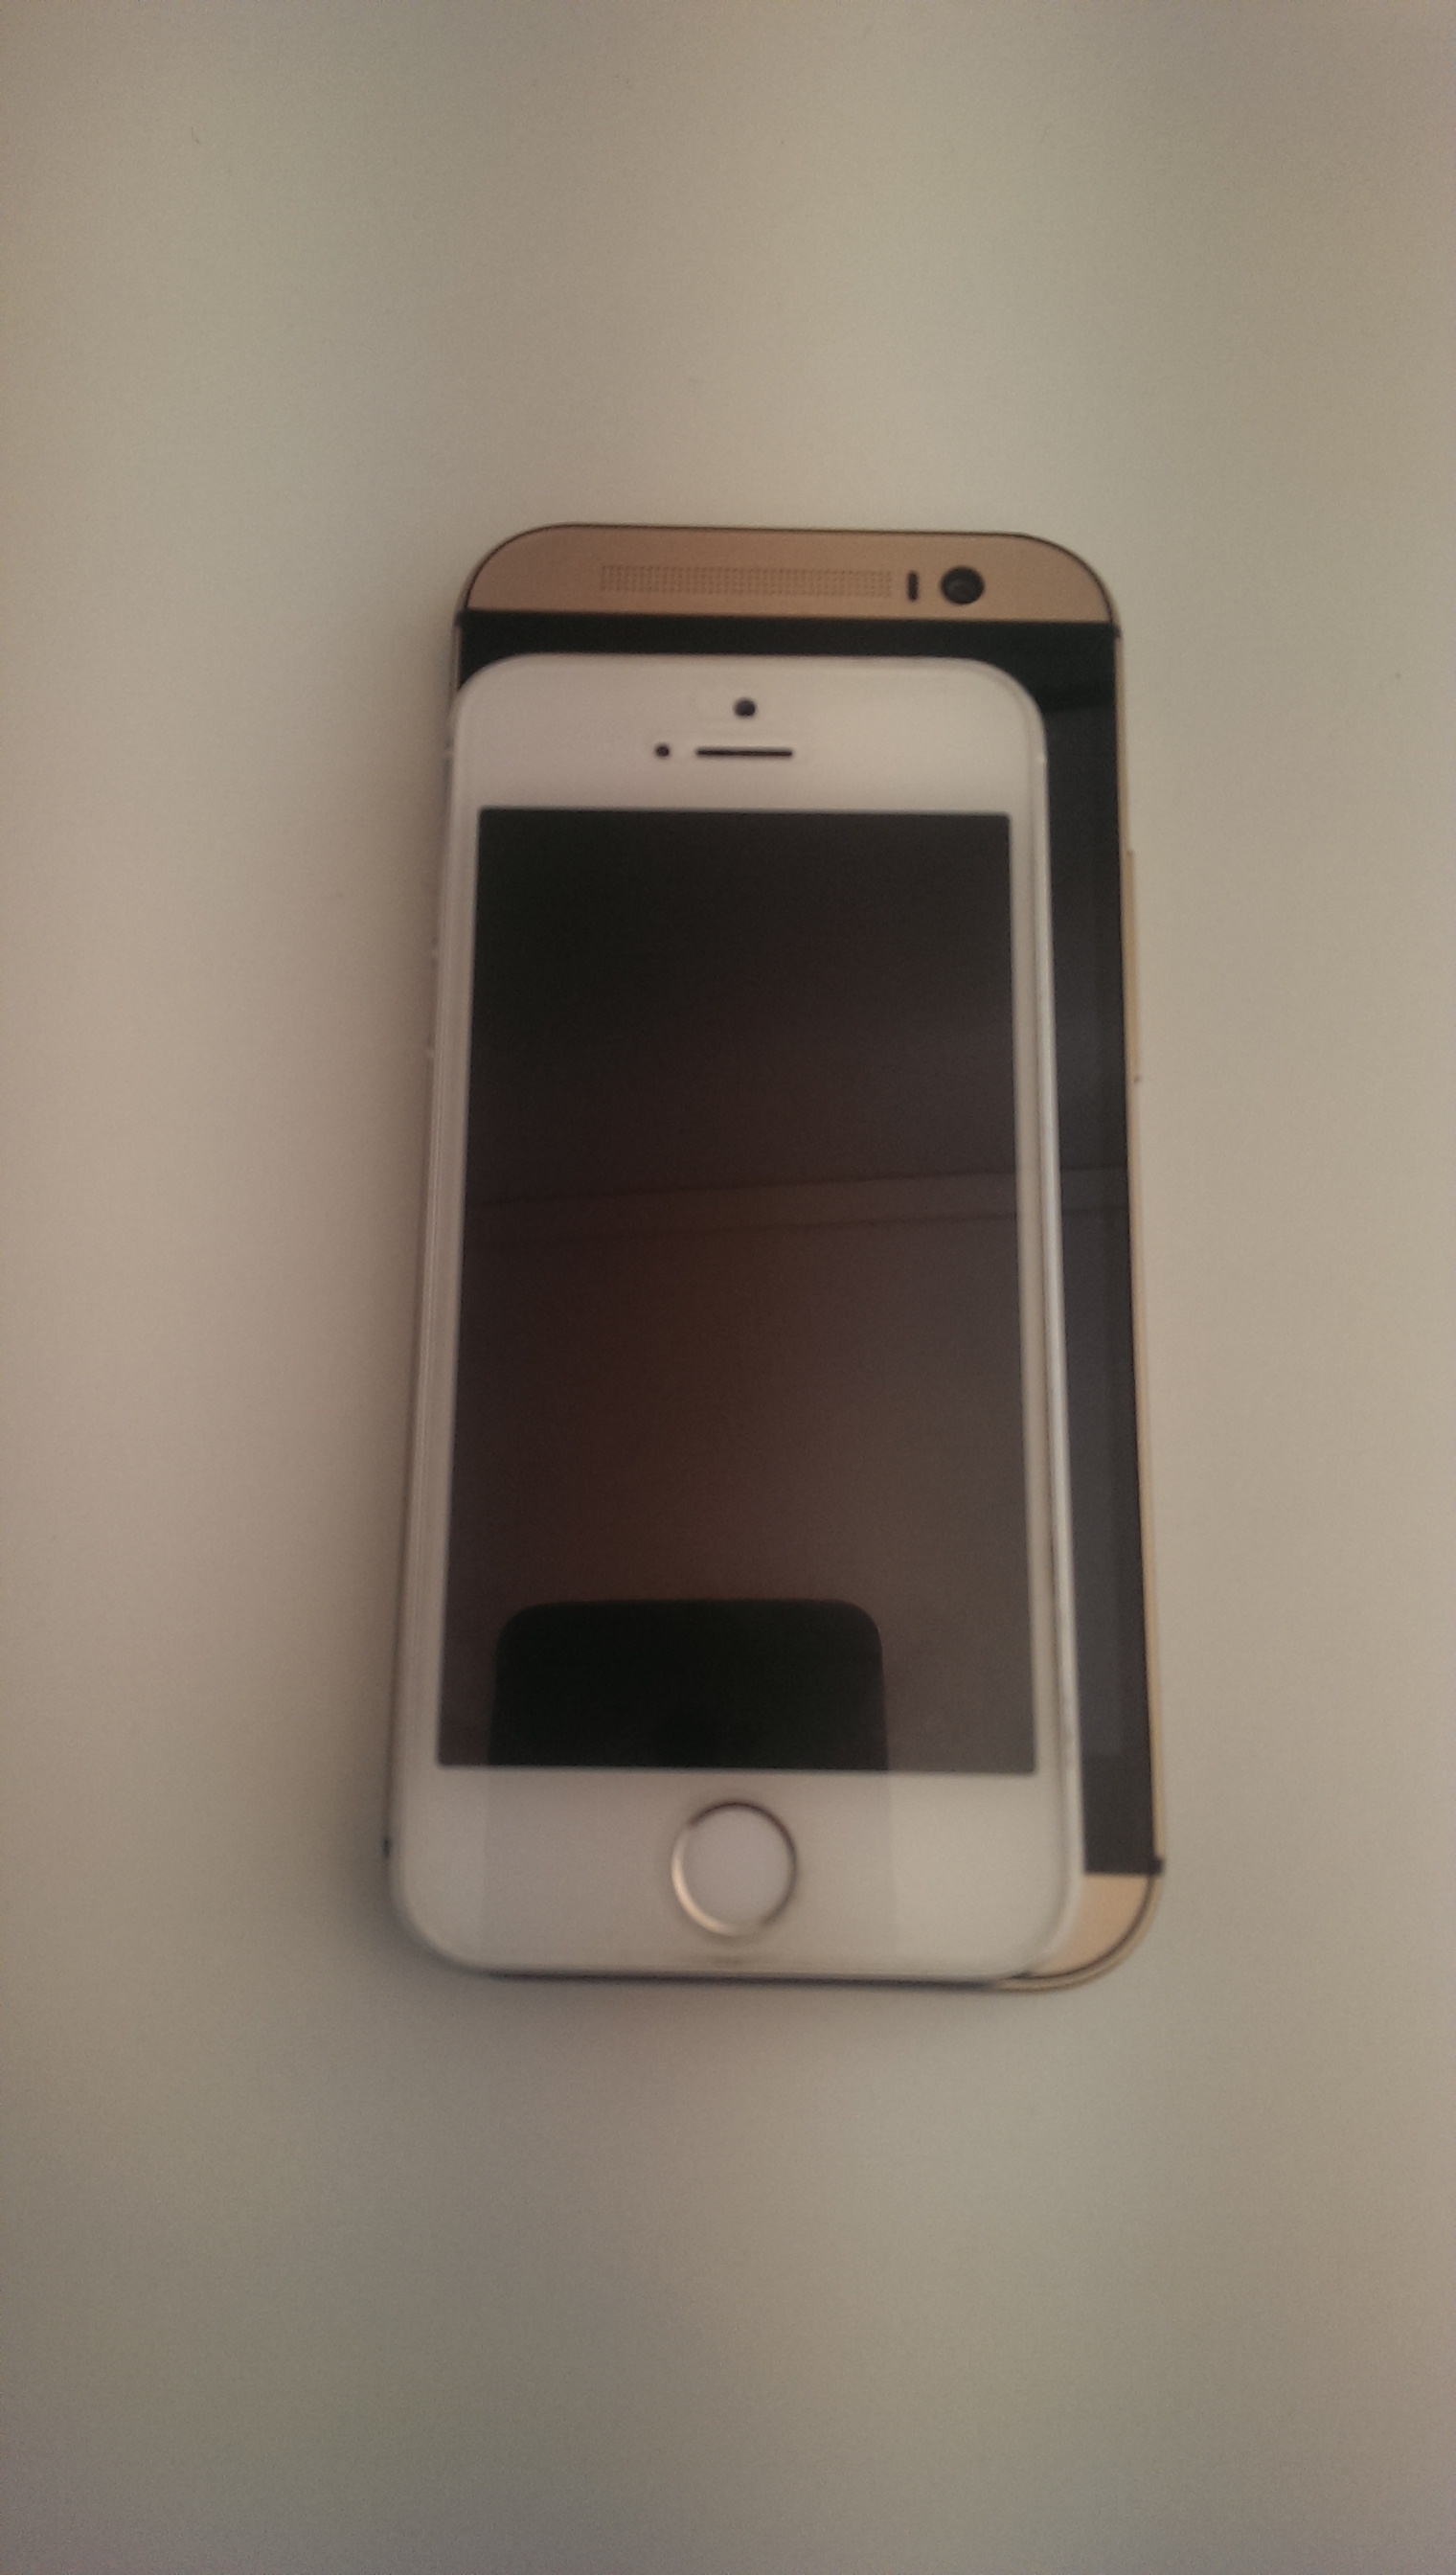 iPhone 5s on top of the HTC One M8